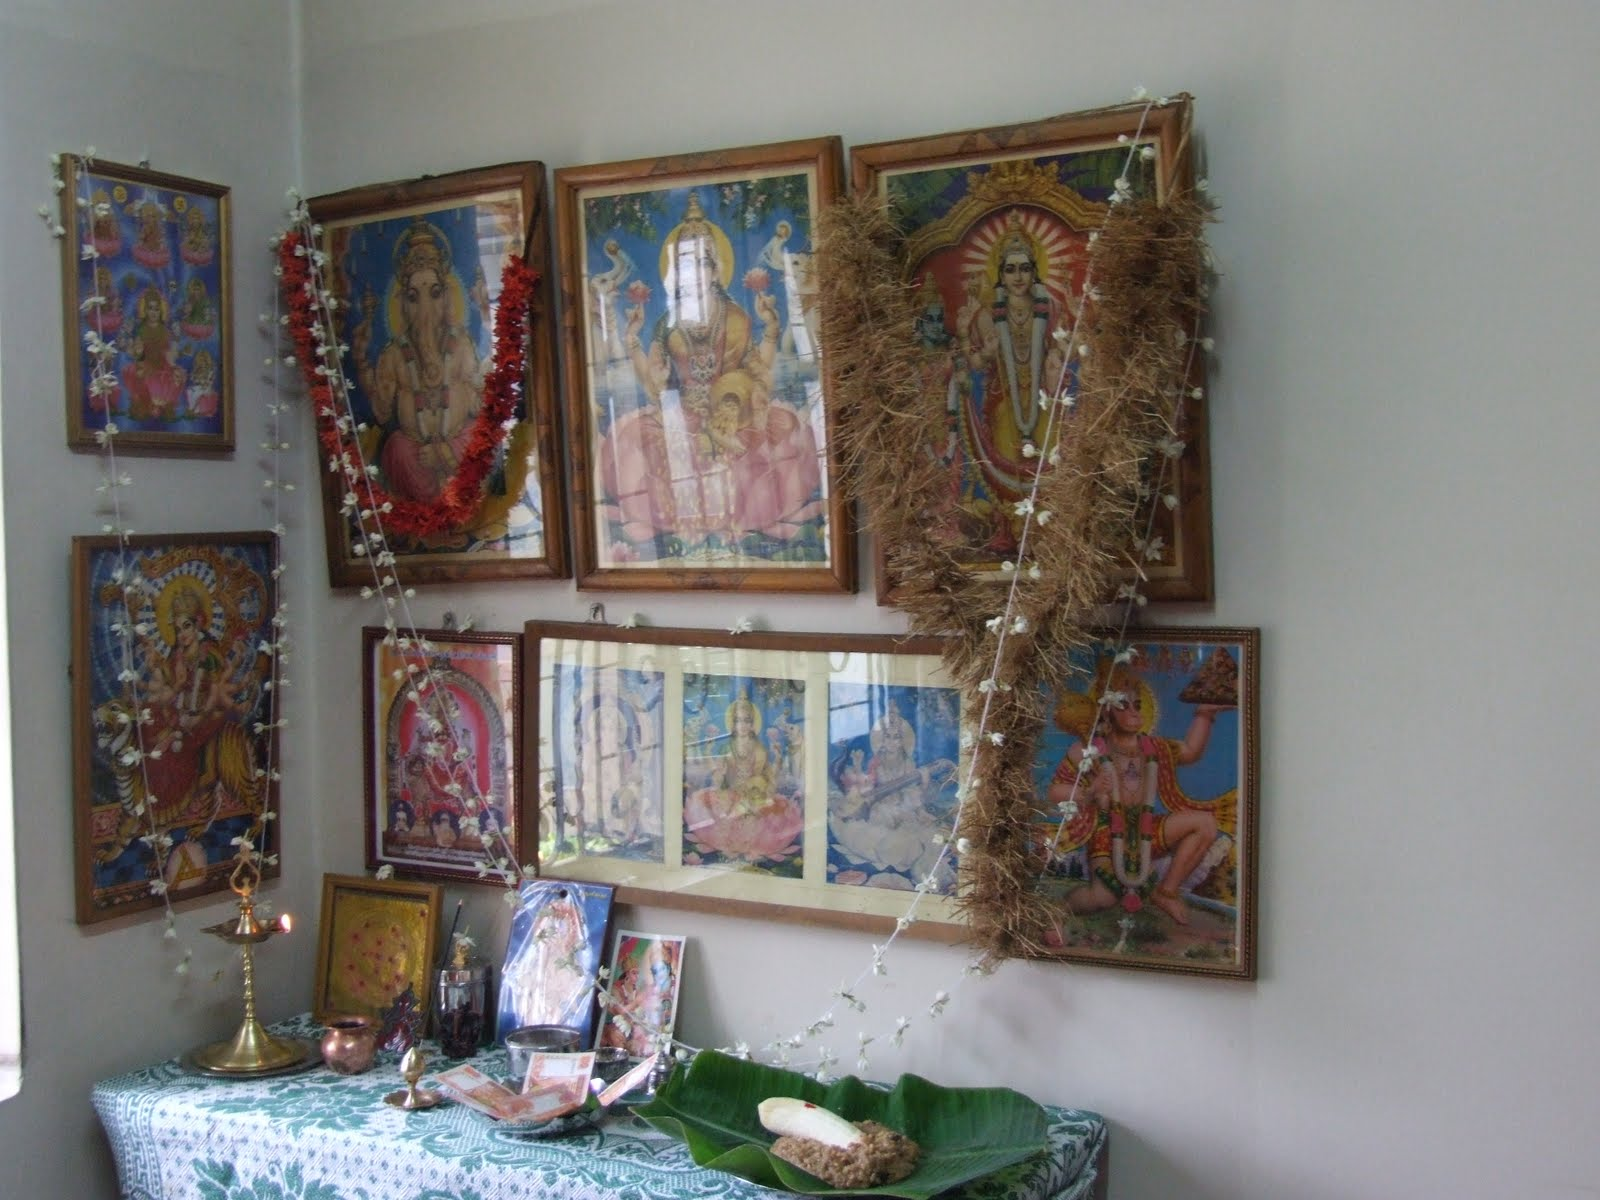 Decorated Shrine Room For The New Year